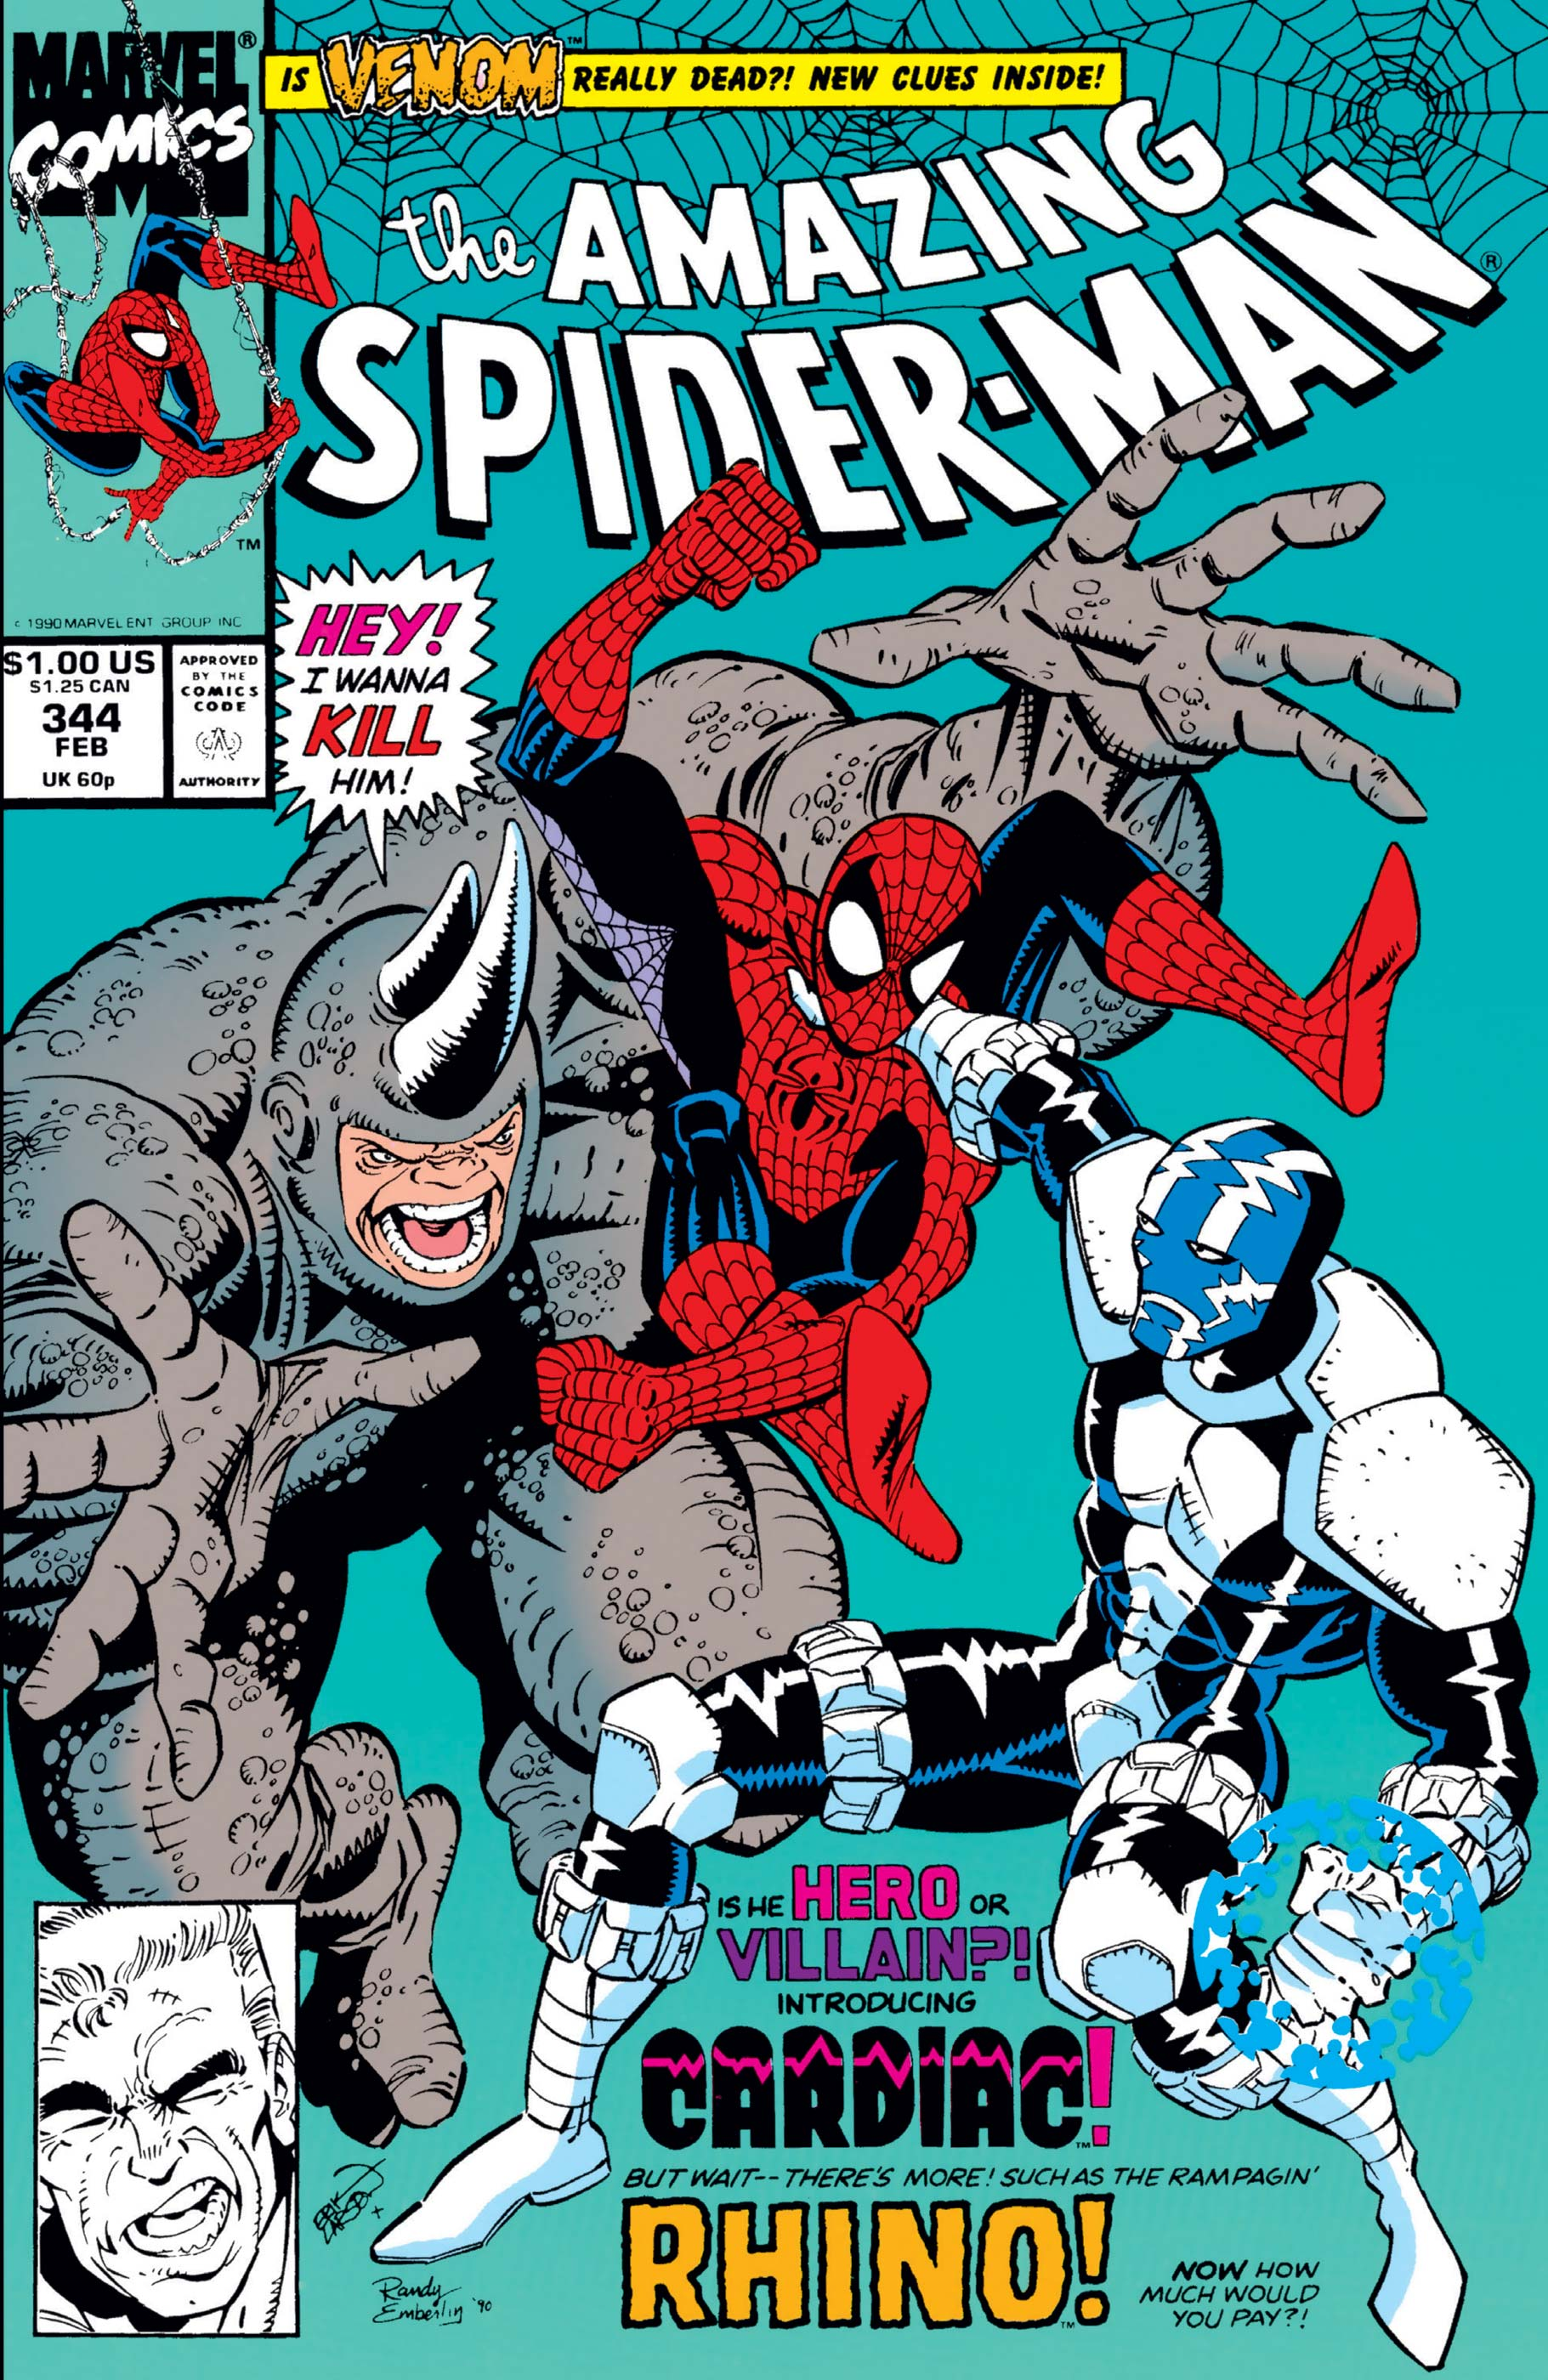 The Amazing Spider-Man (1963) #344